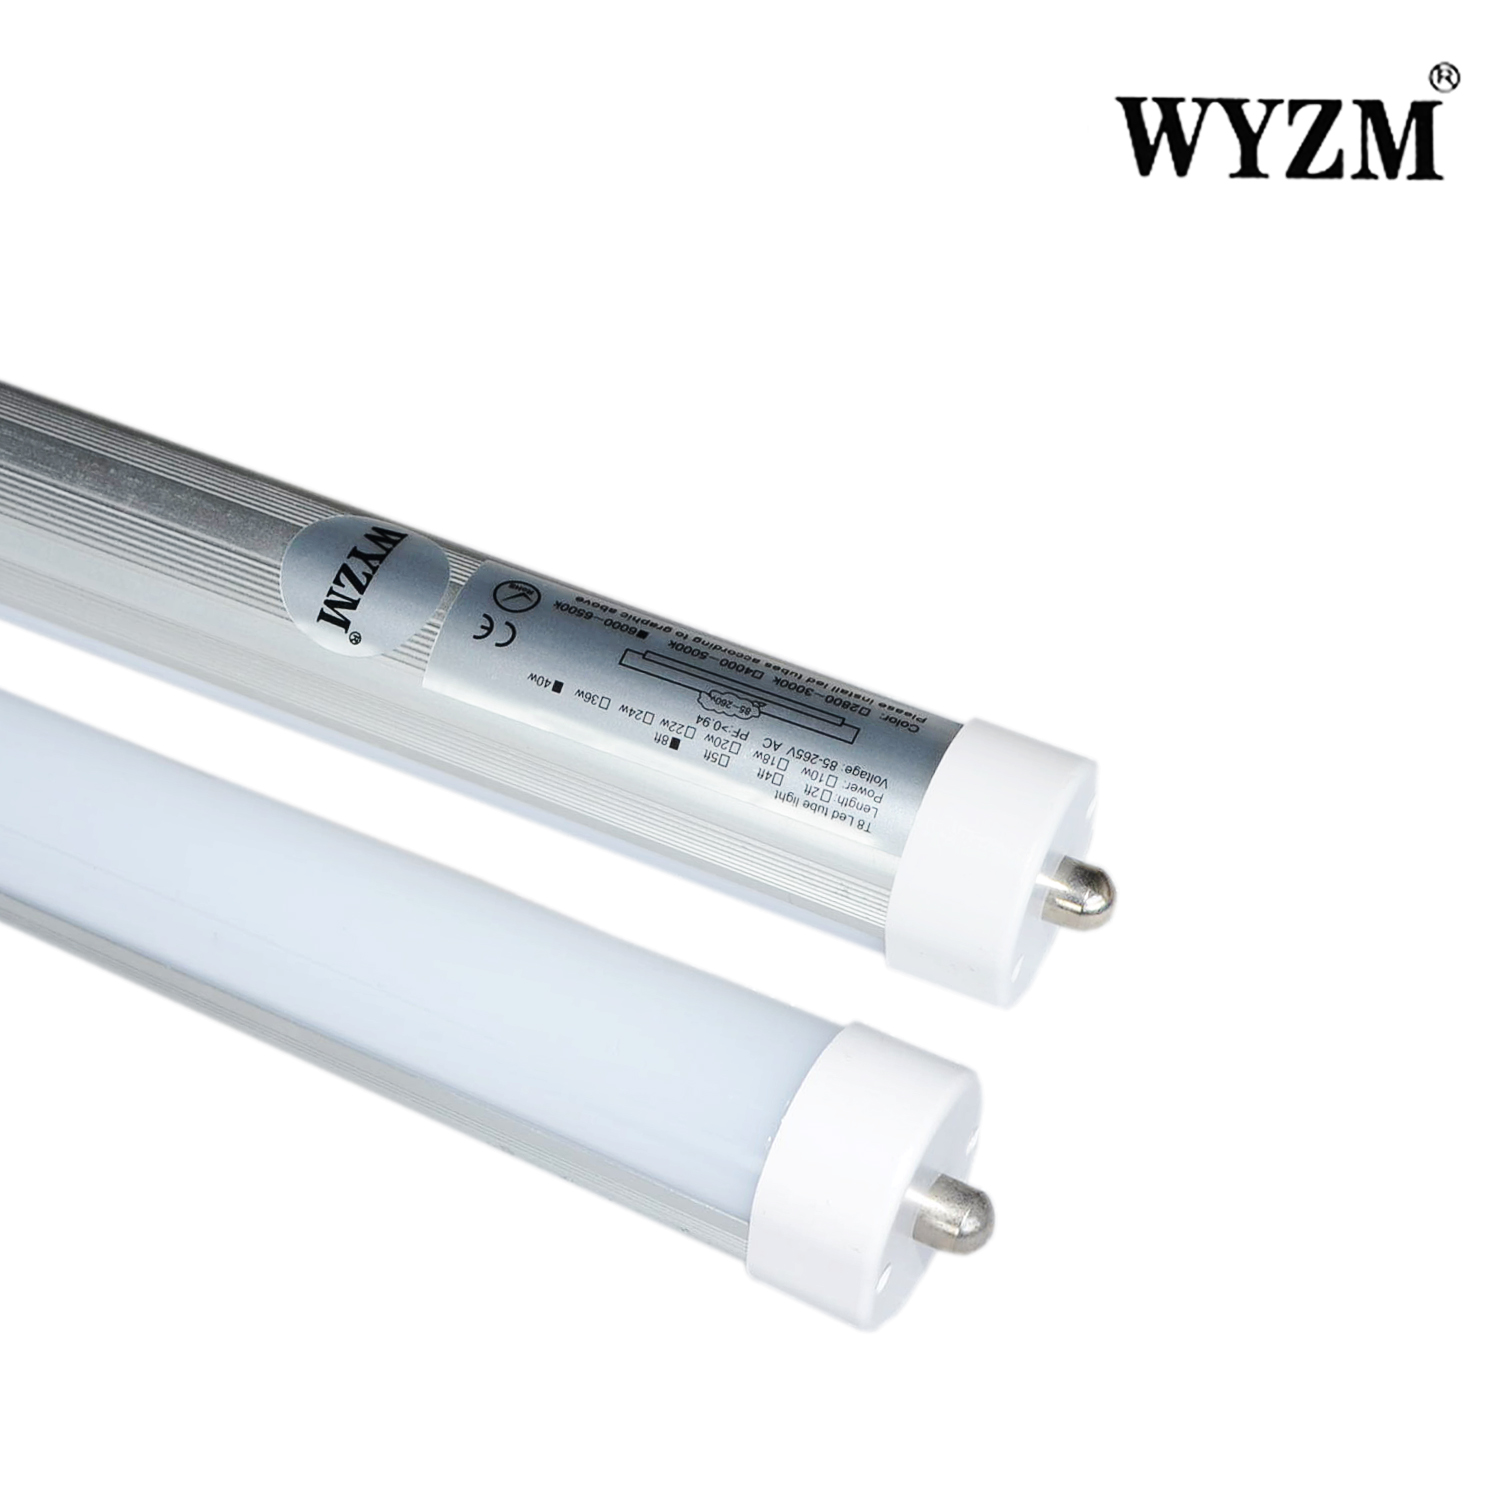 High quality 8ft long 8ft led tube light fixture 75Watt T12 Linear Fluorescent Tube Replacement